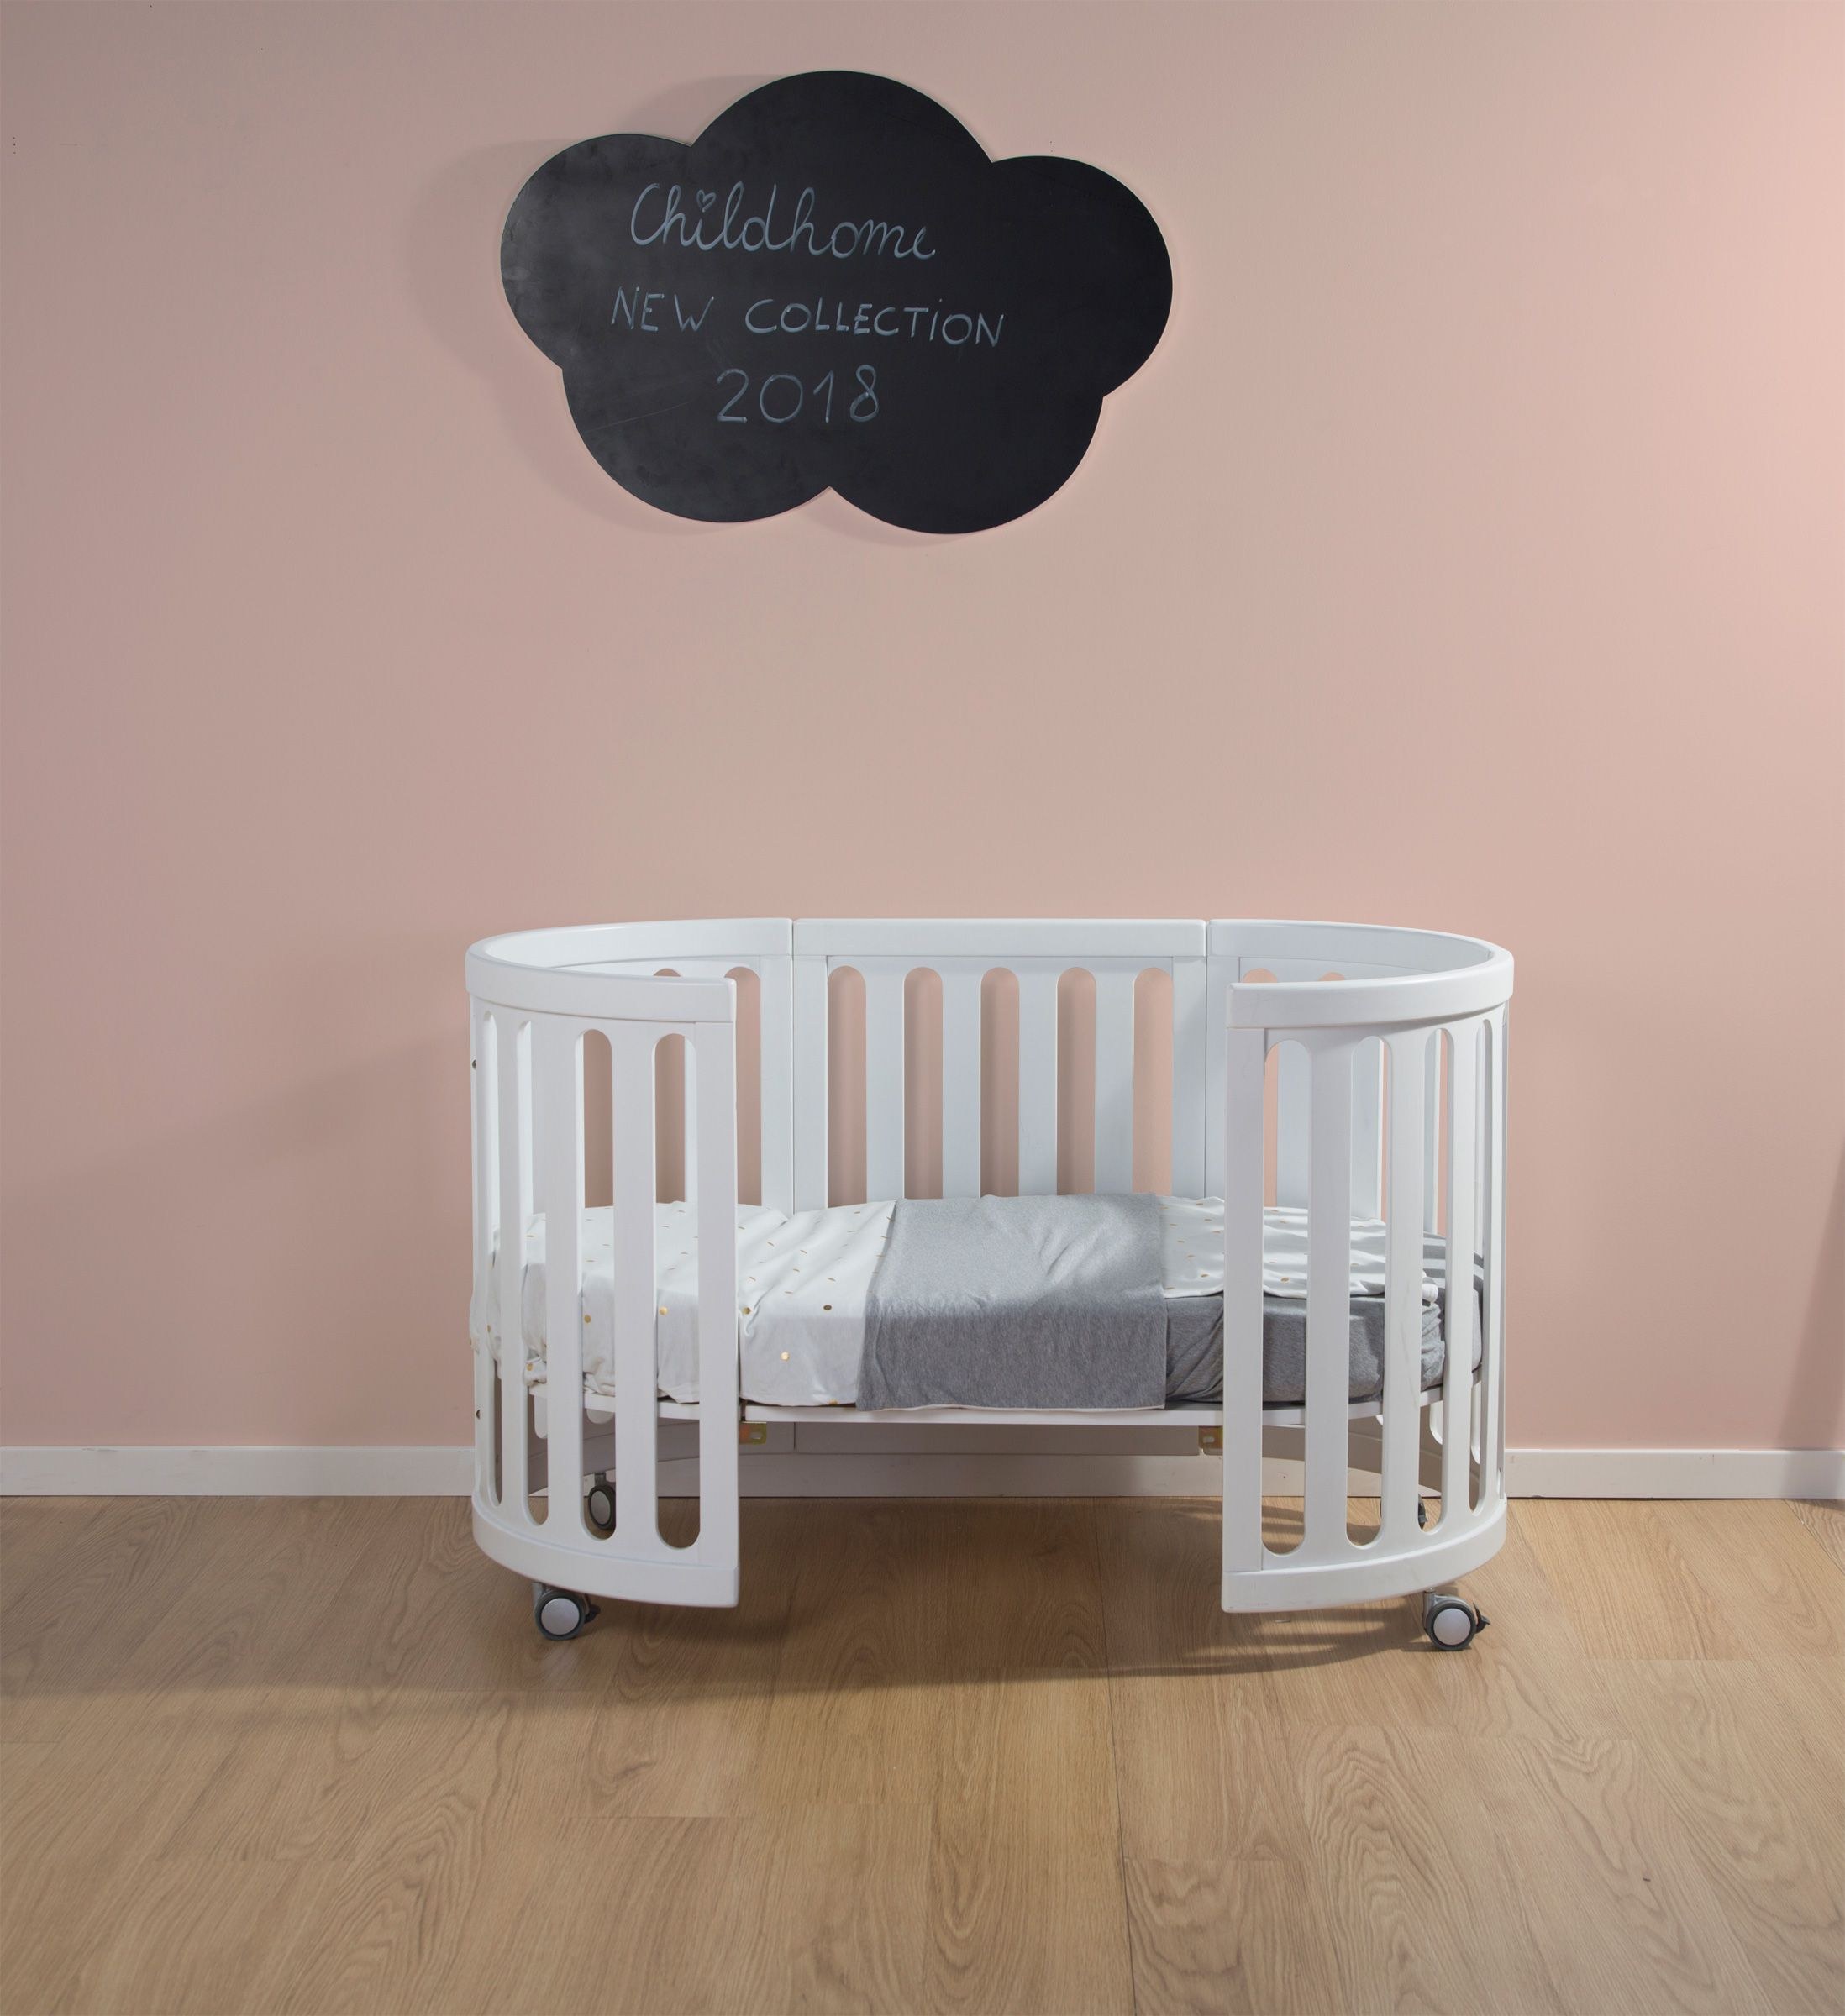 Bērnu gulta-transformeris 4 in 1 CHILDHOME Oval Cot white + Matracis